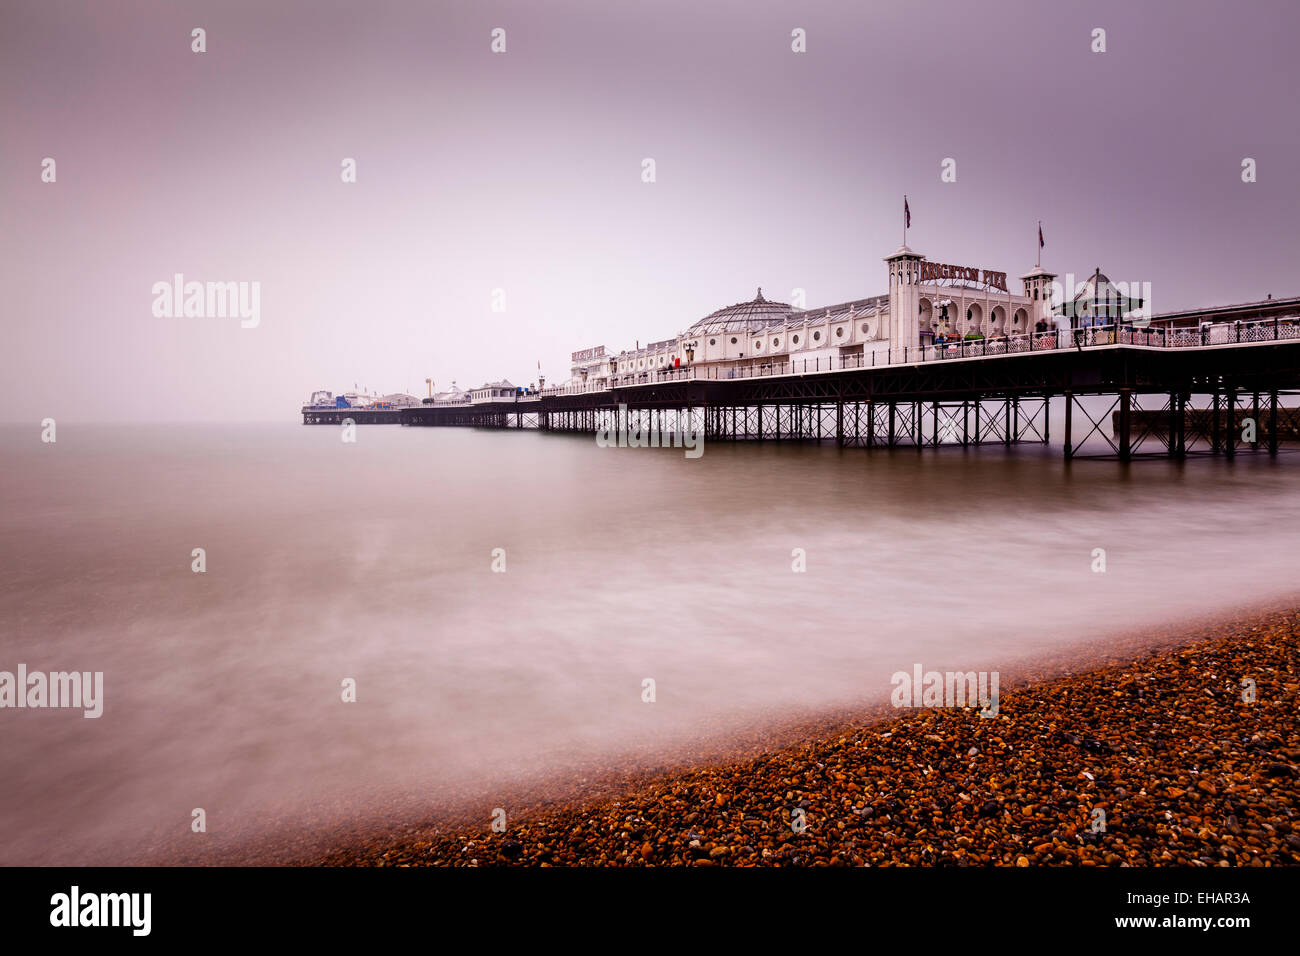 Brighton Pier, Brighton, Sussex, England. - Stock Image